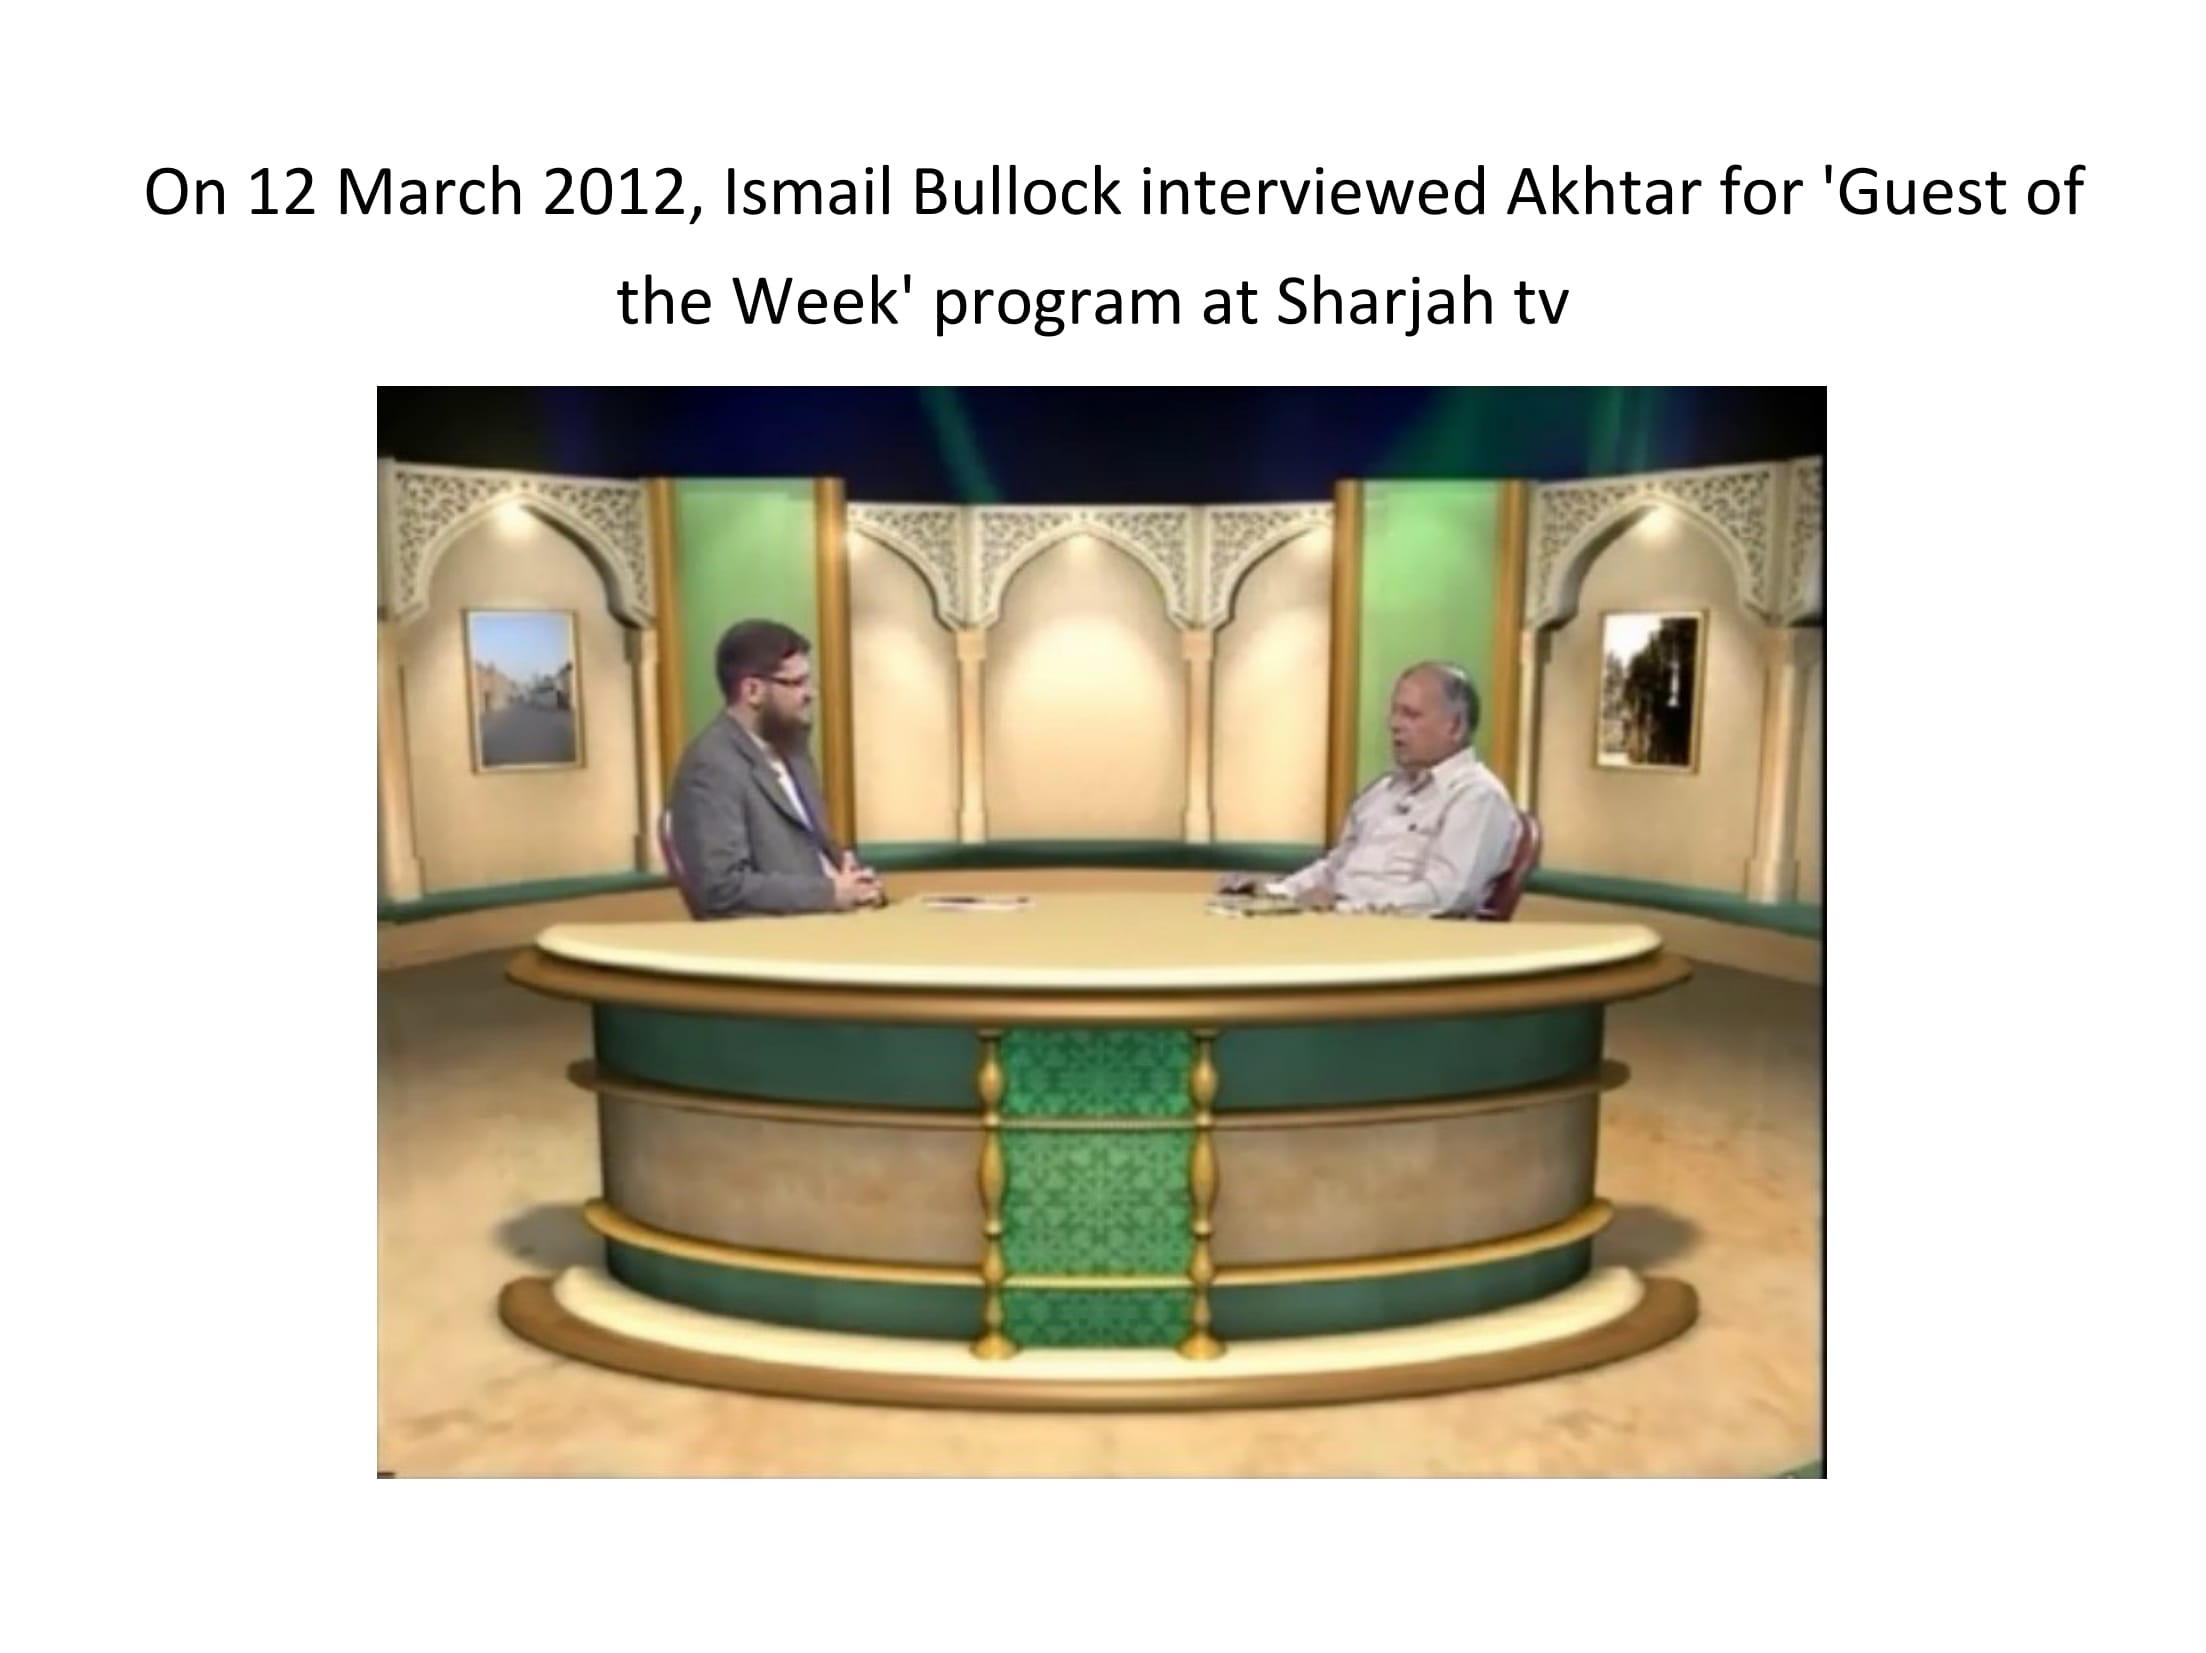 Interview at Sharjah tv